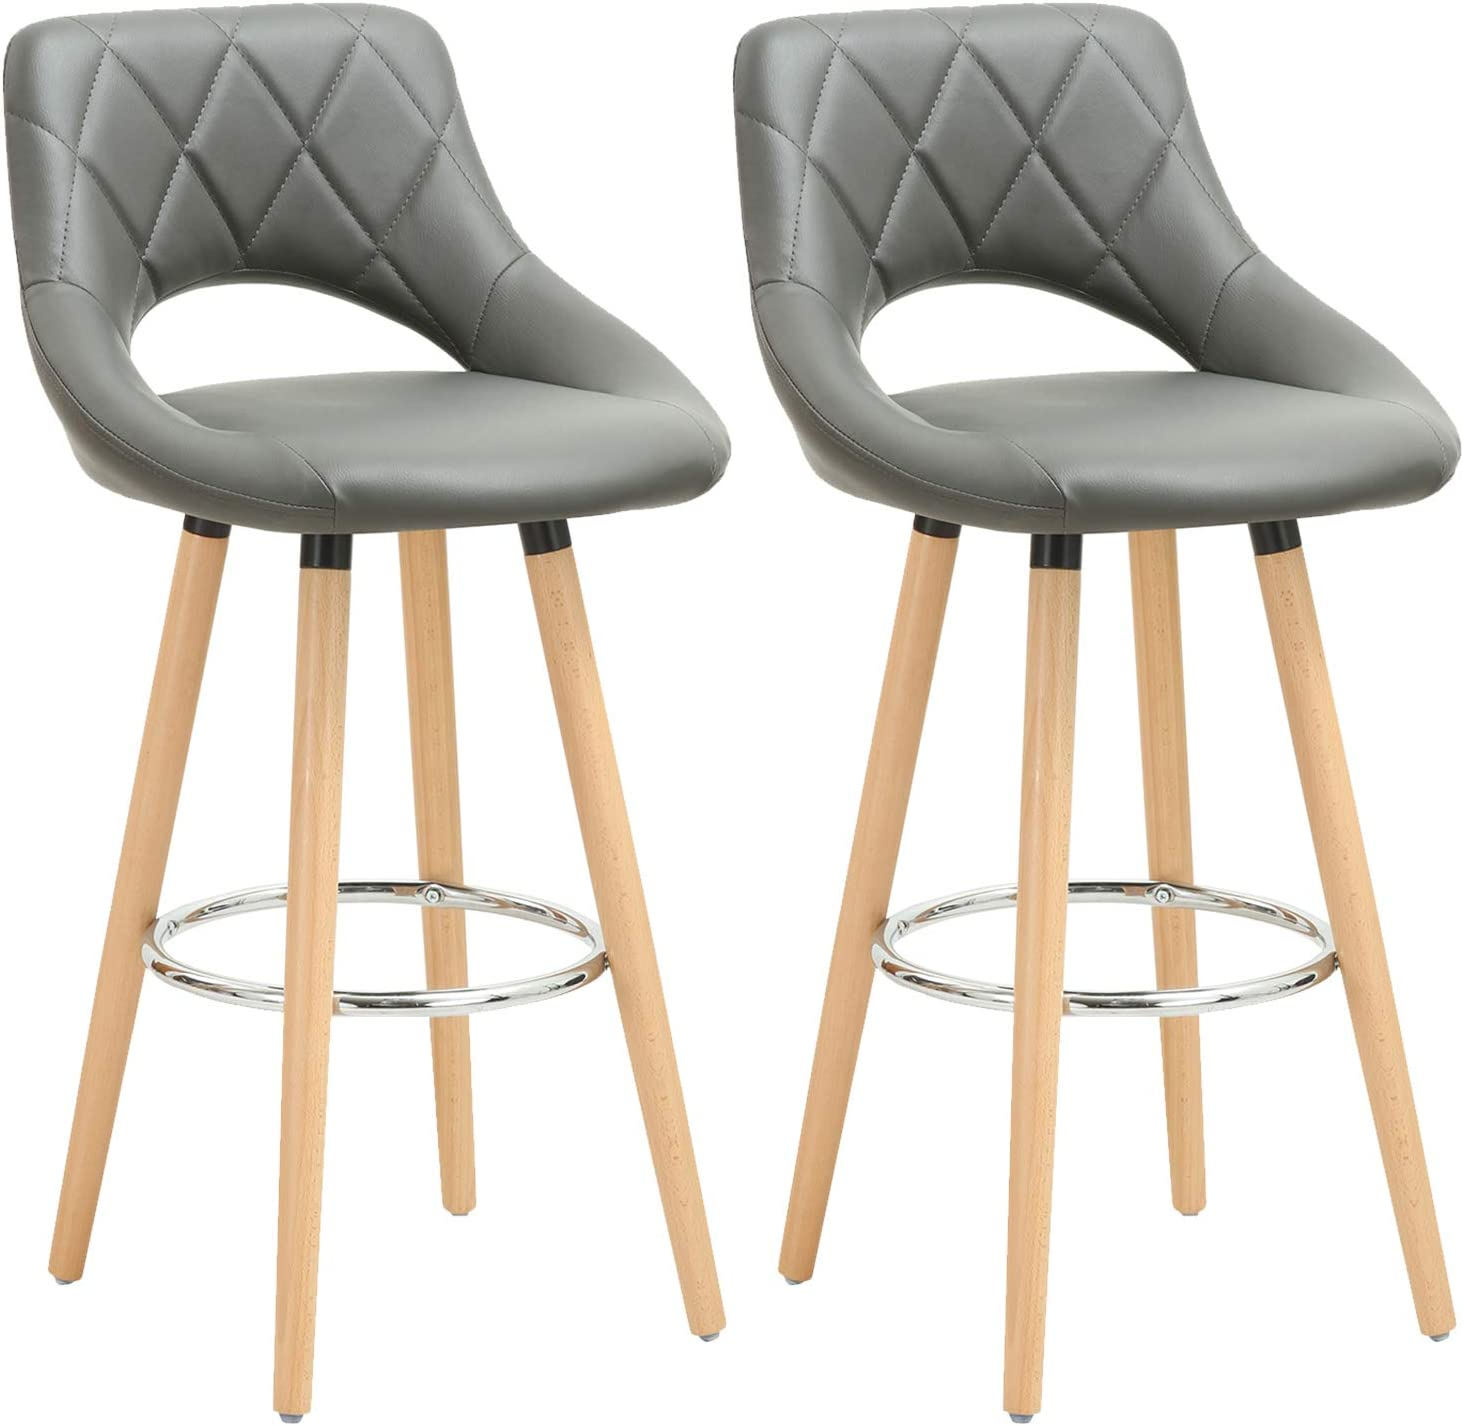 WOLTU Breakfast Kitchen Counter Bar Stools Set of 9 pcs Faux Leather Seat  Bar Chairs Wood Legs Barstools Grey High Stools